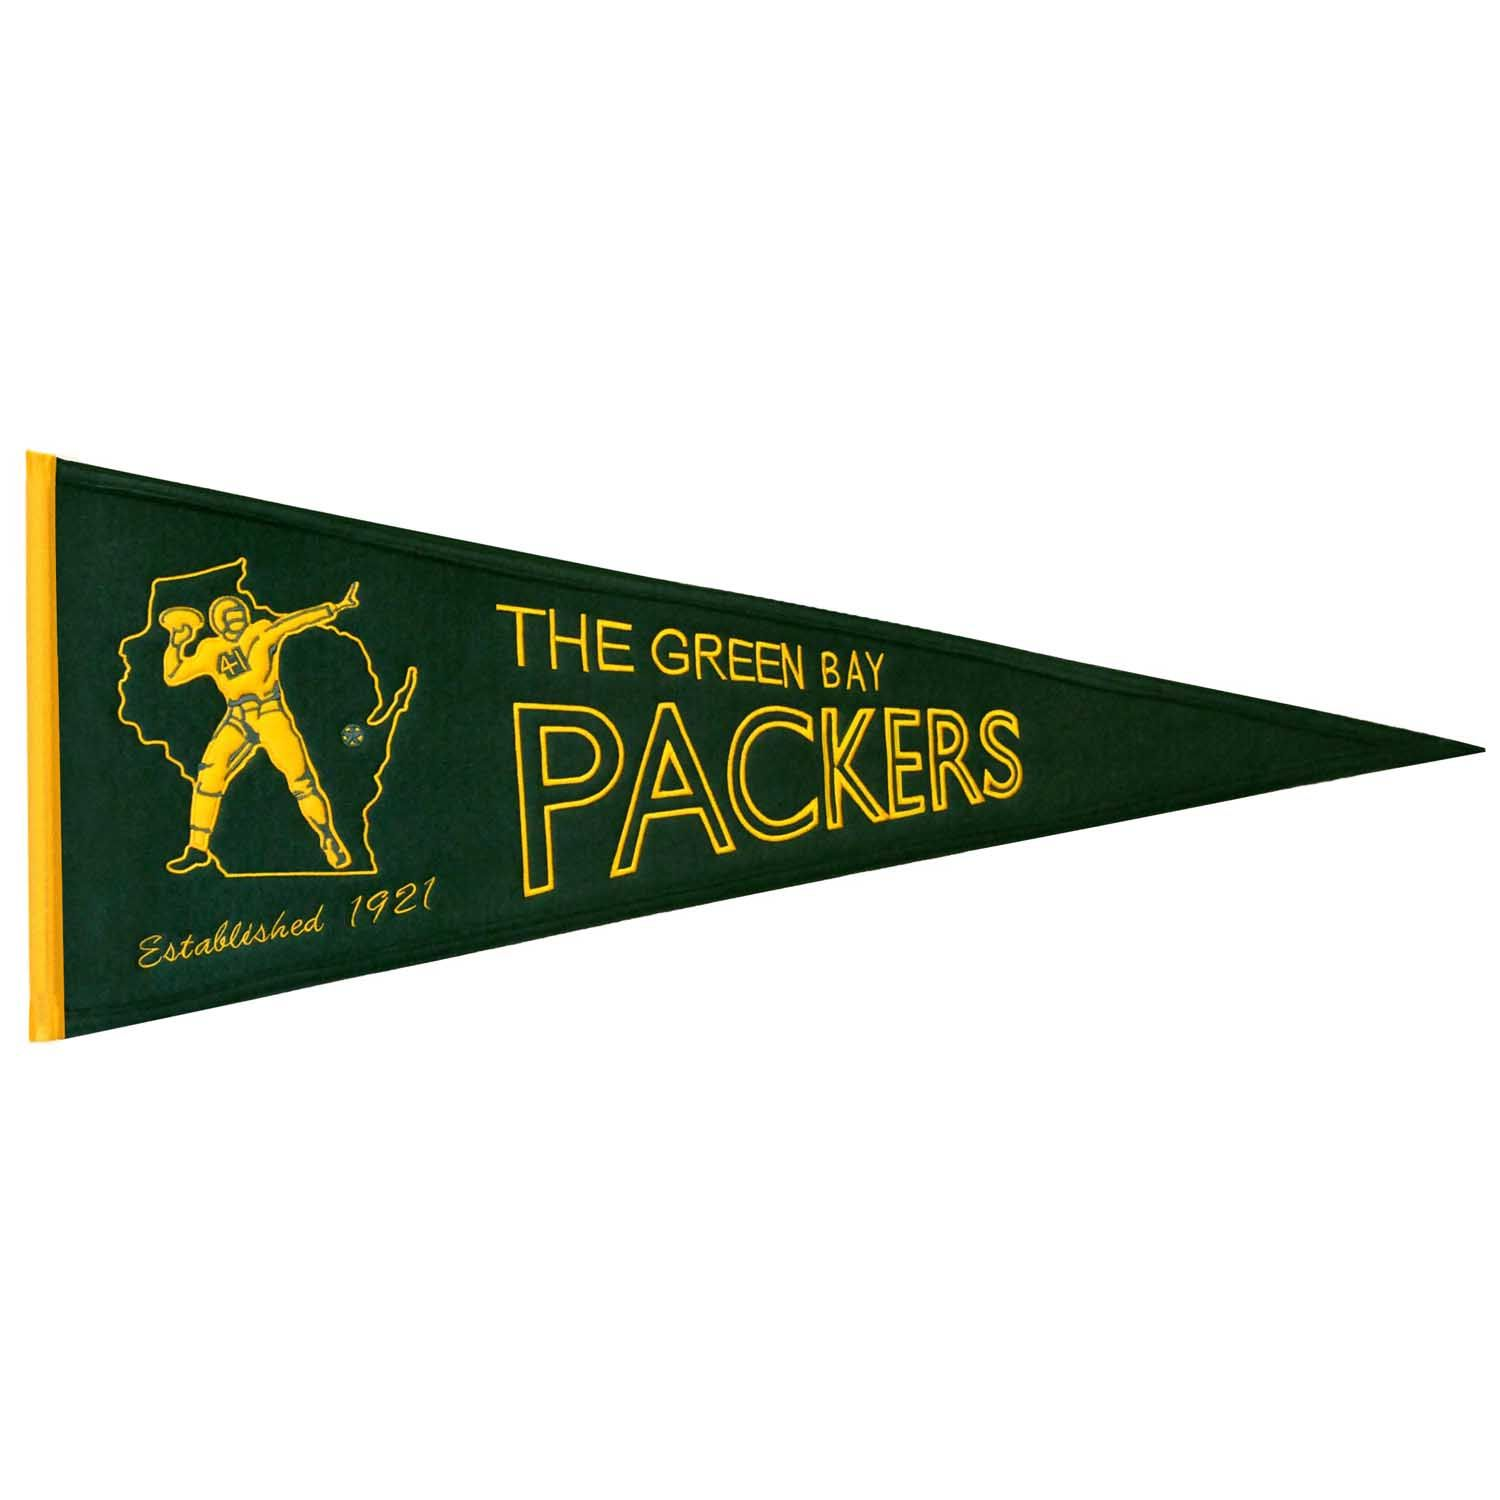 Green Bay Packers Throwback Nfl Green Bay Nfl Packers Green Bay Packers